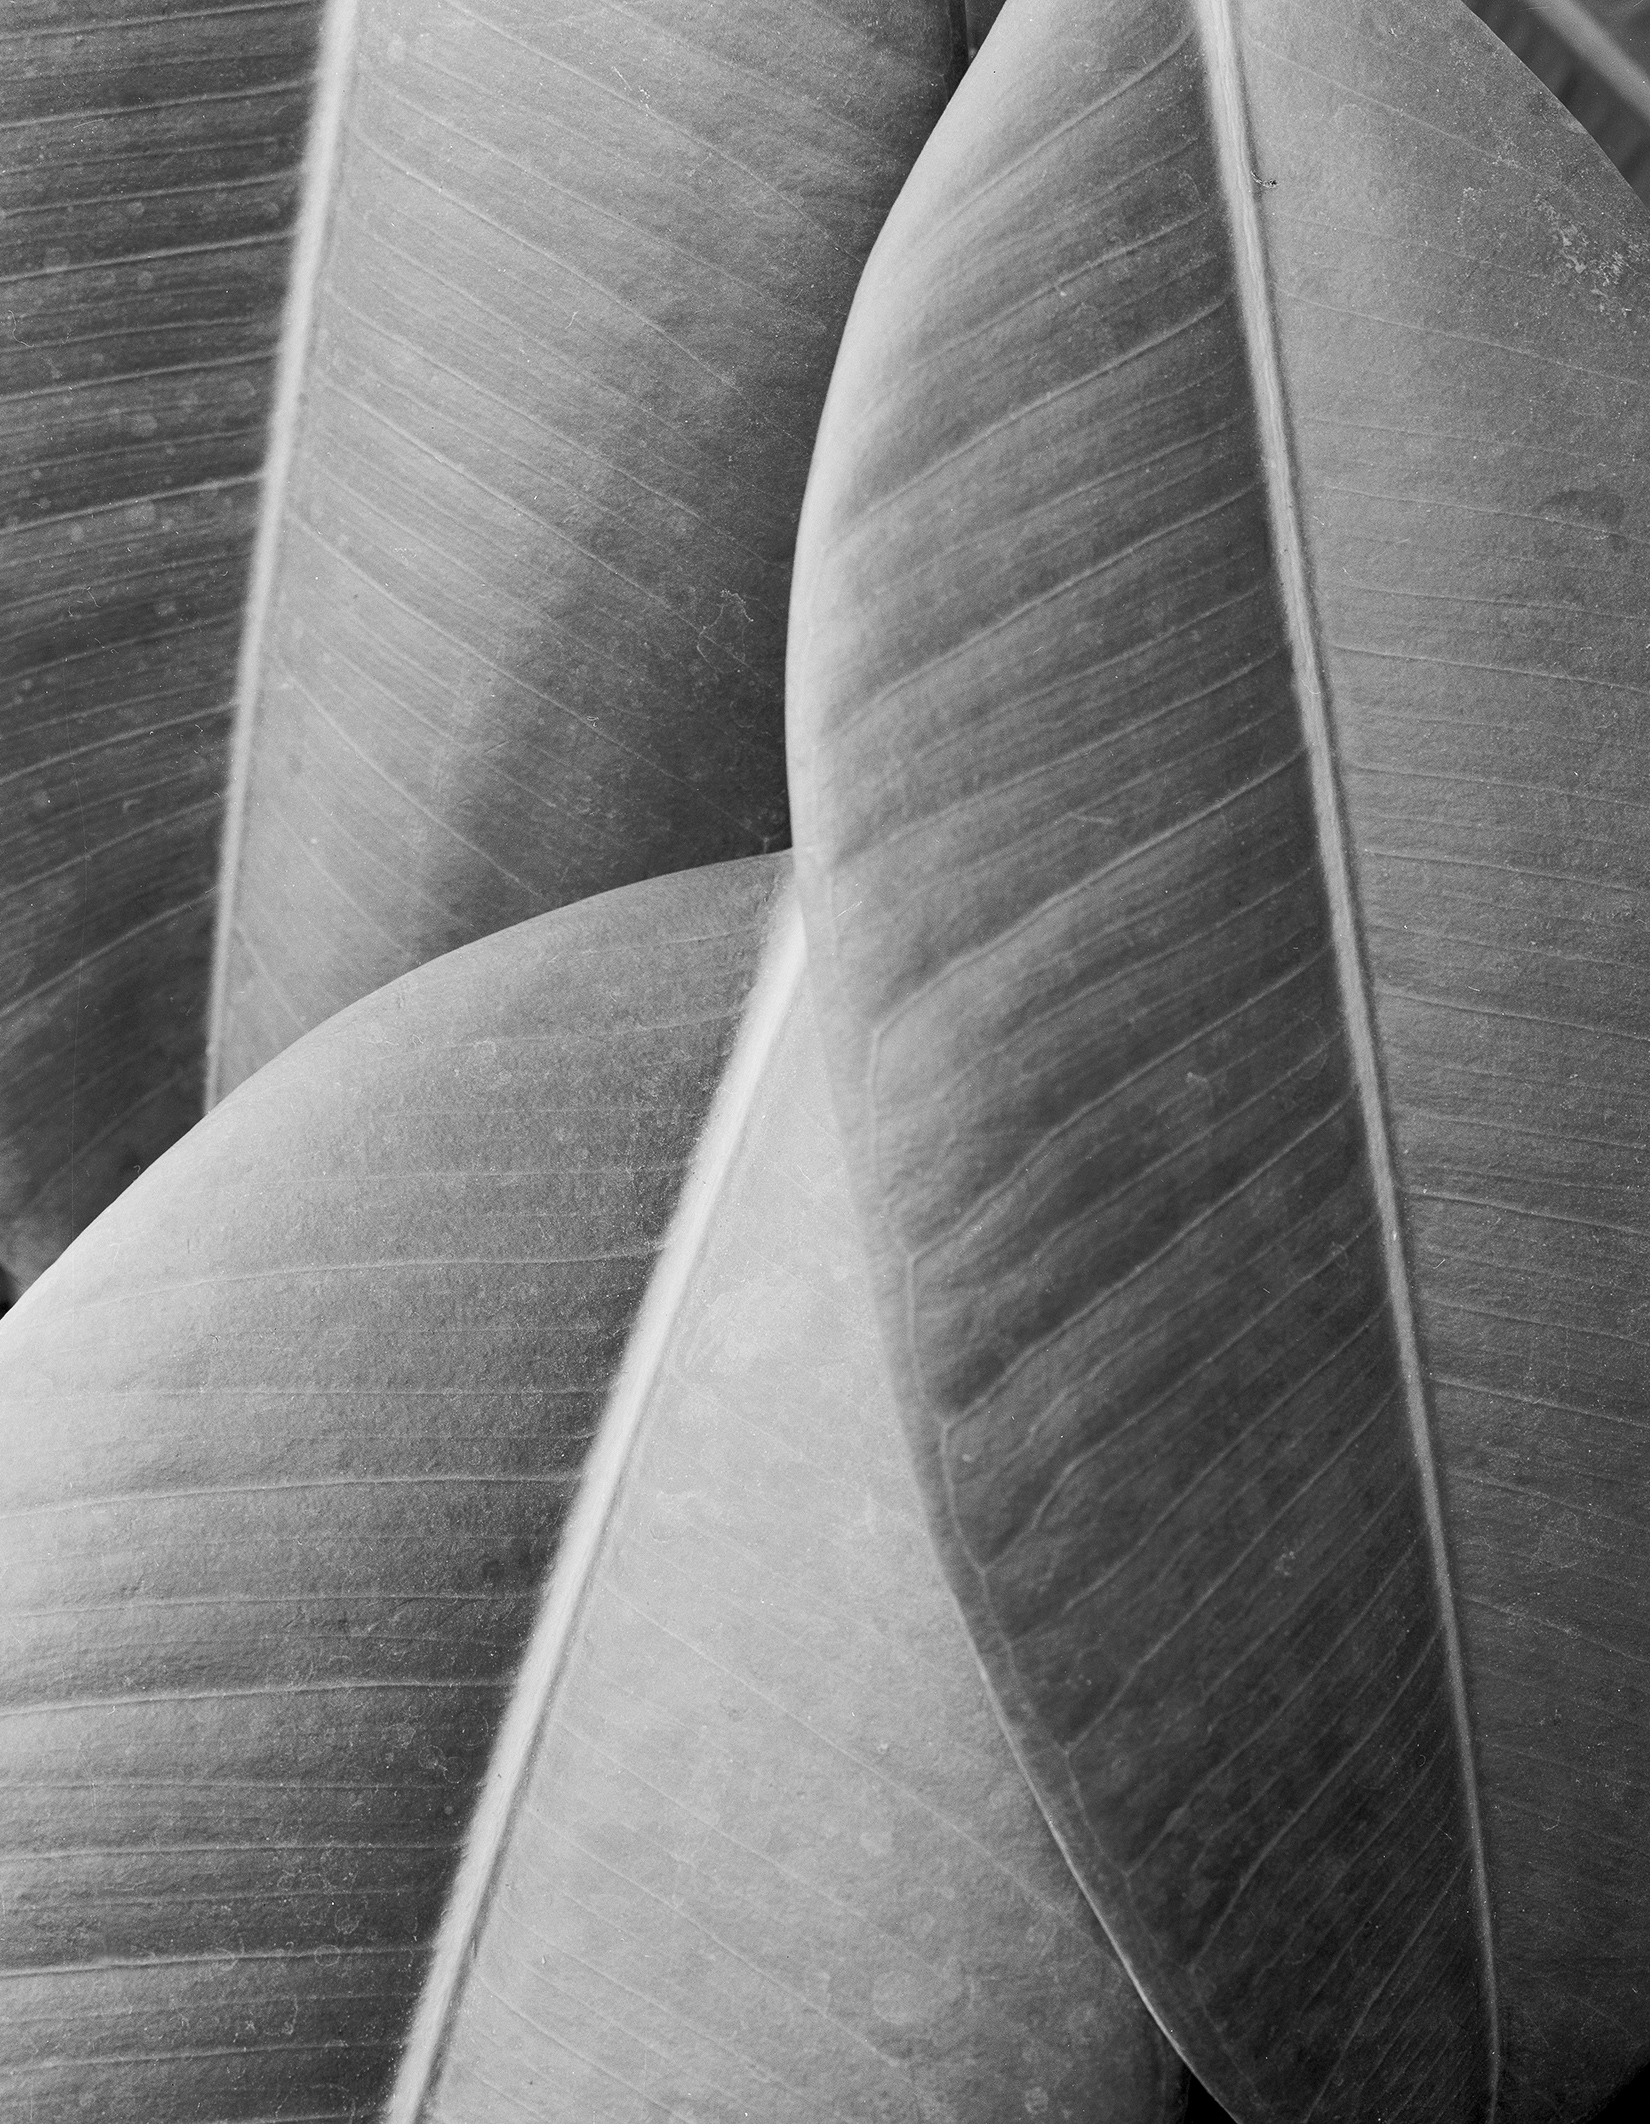 Rubber Tree Leaves